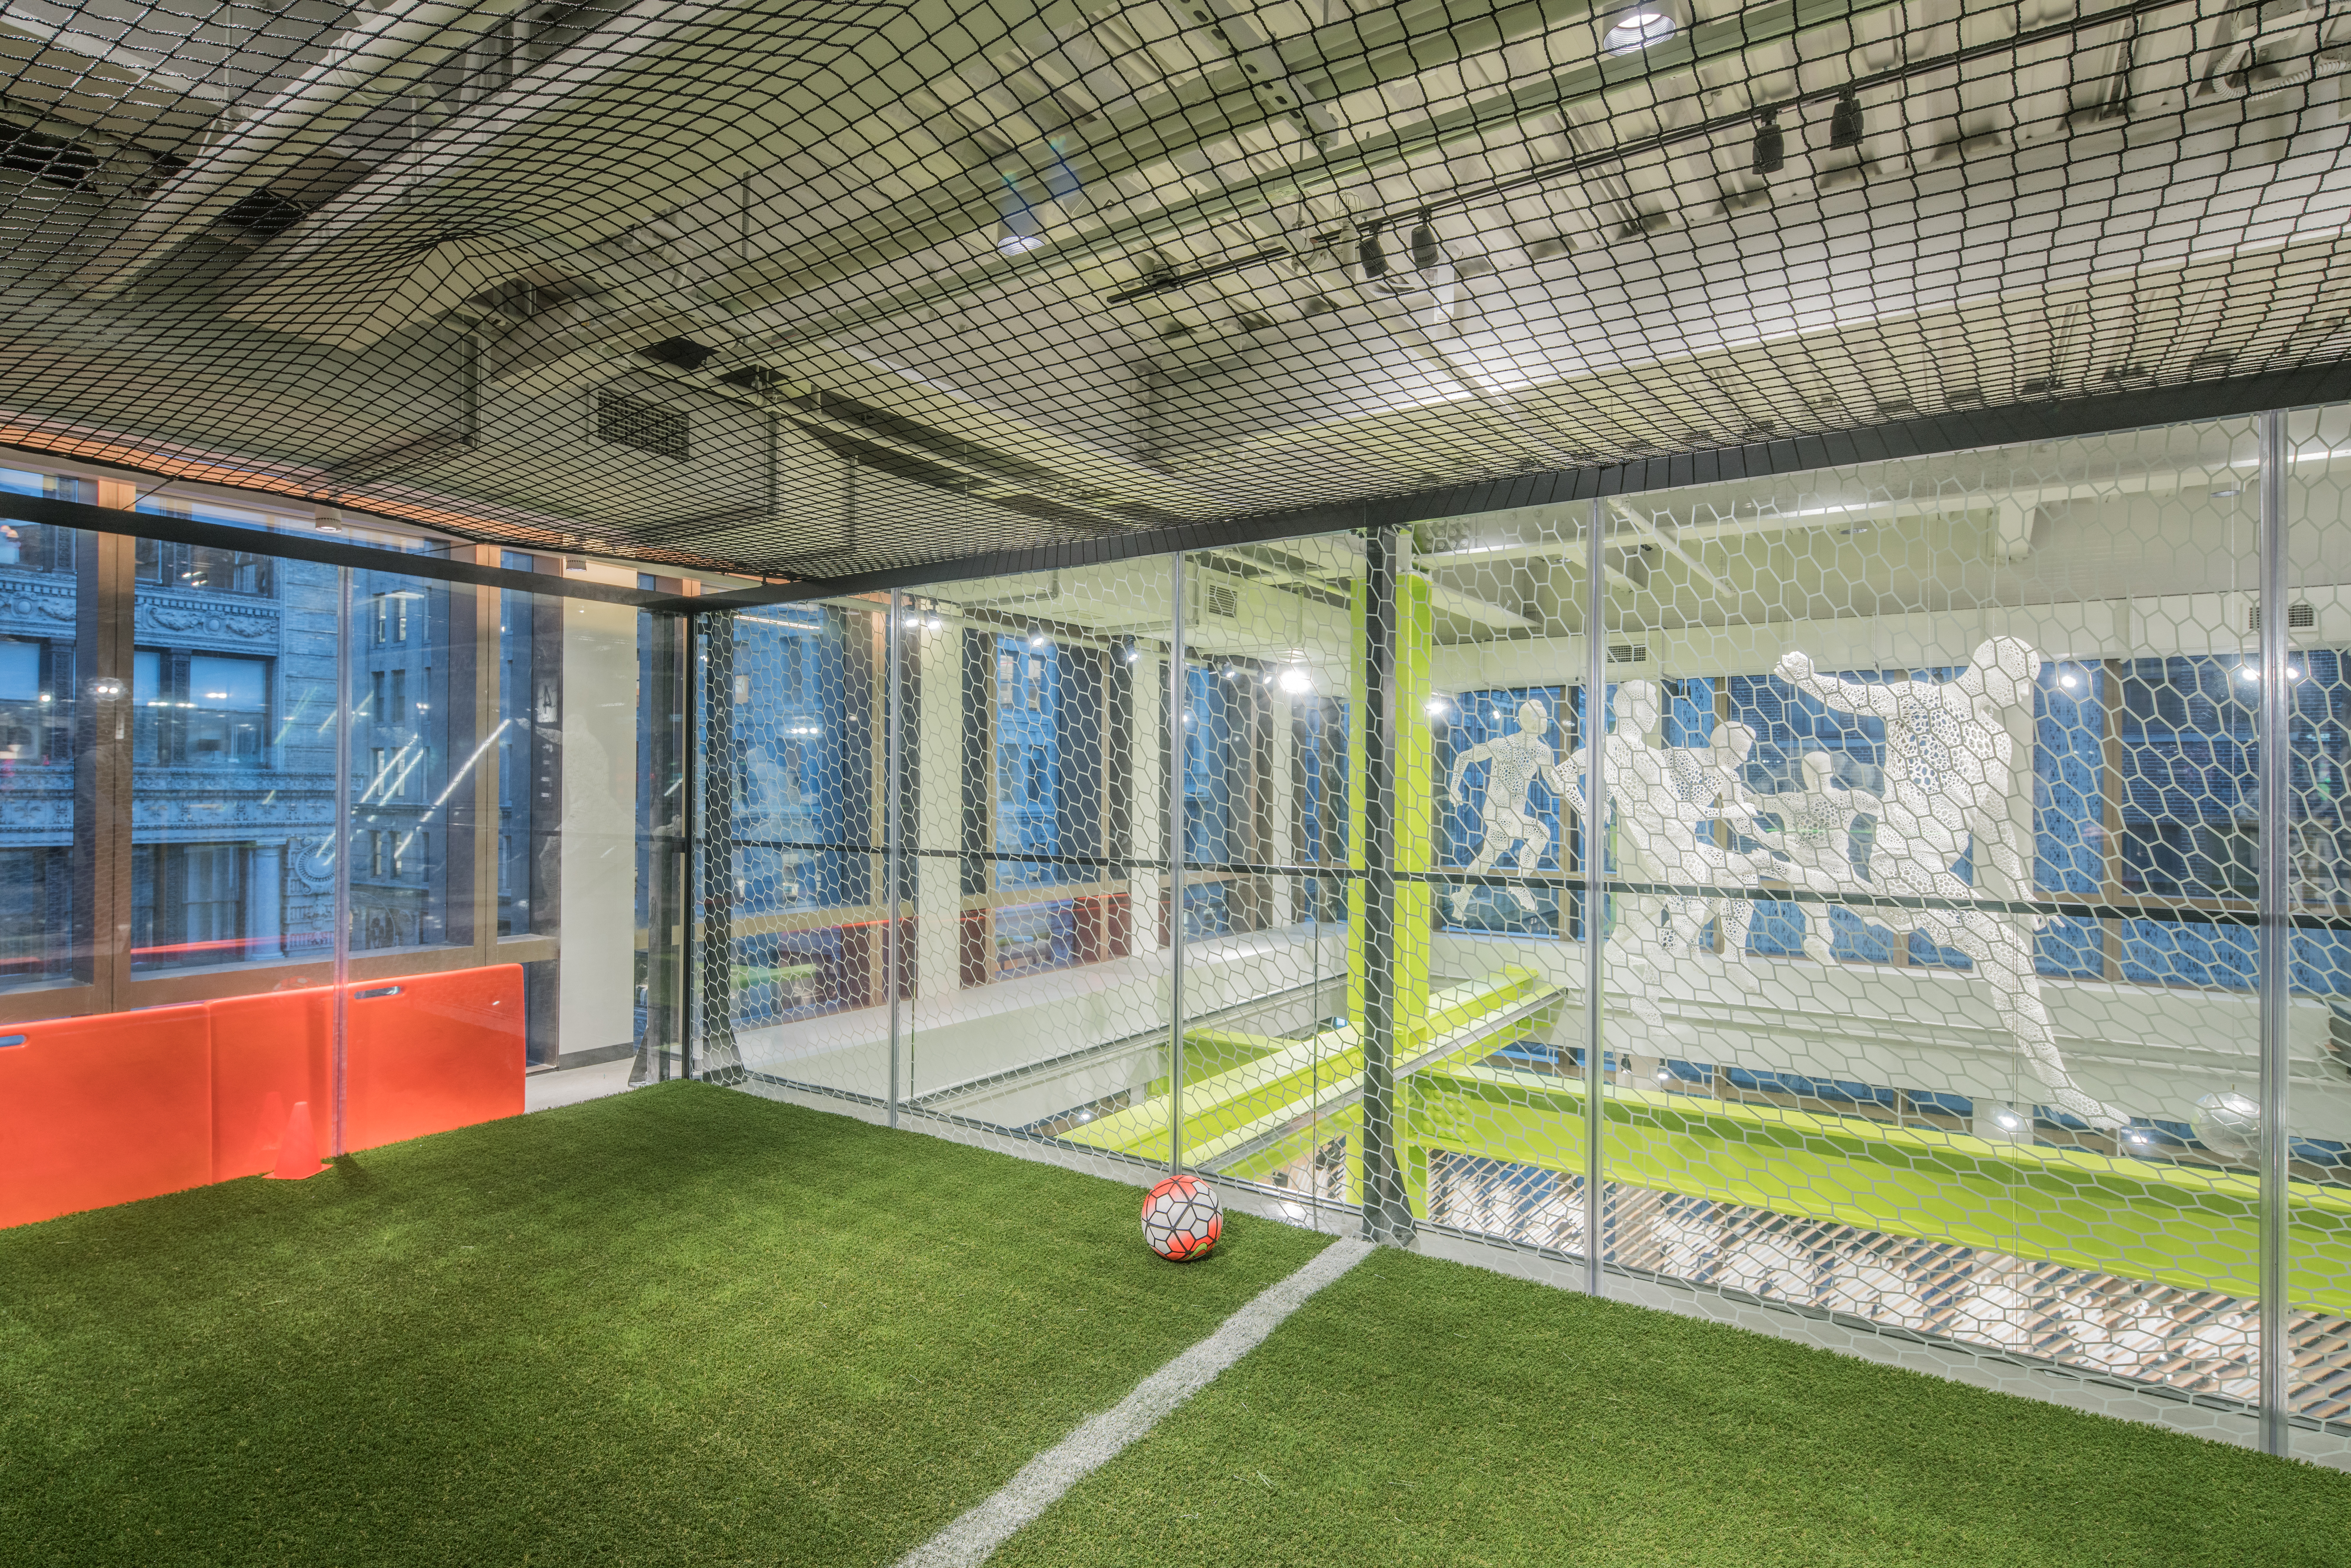 The soccer trial area in Nike's new Soho store